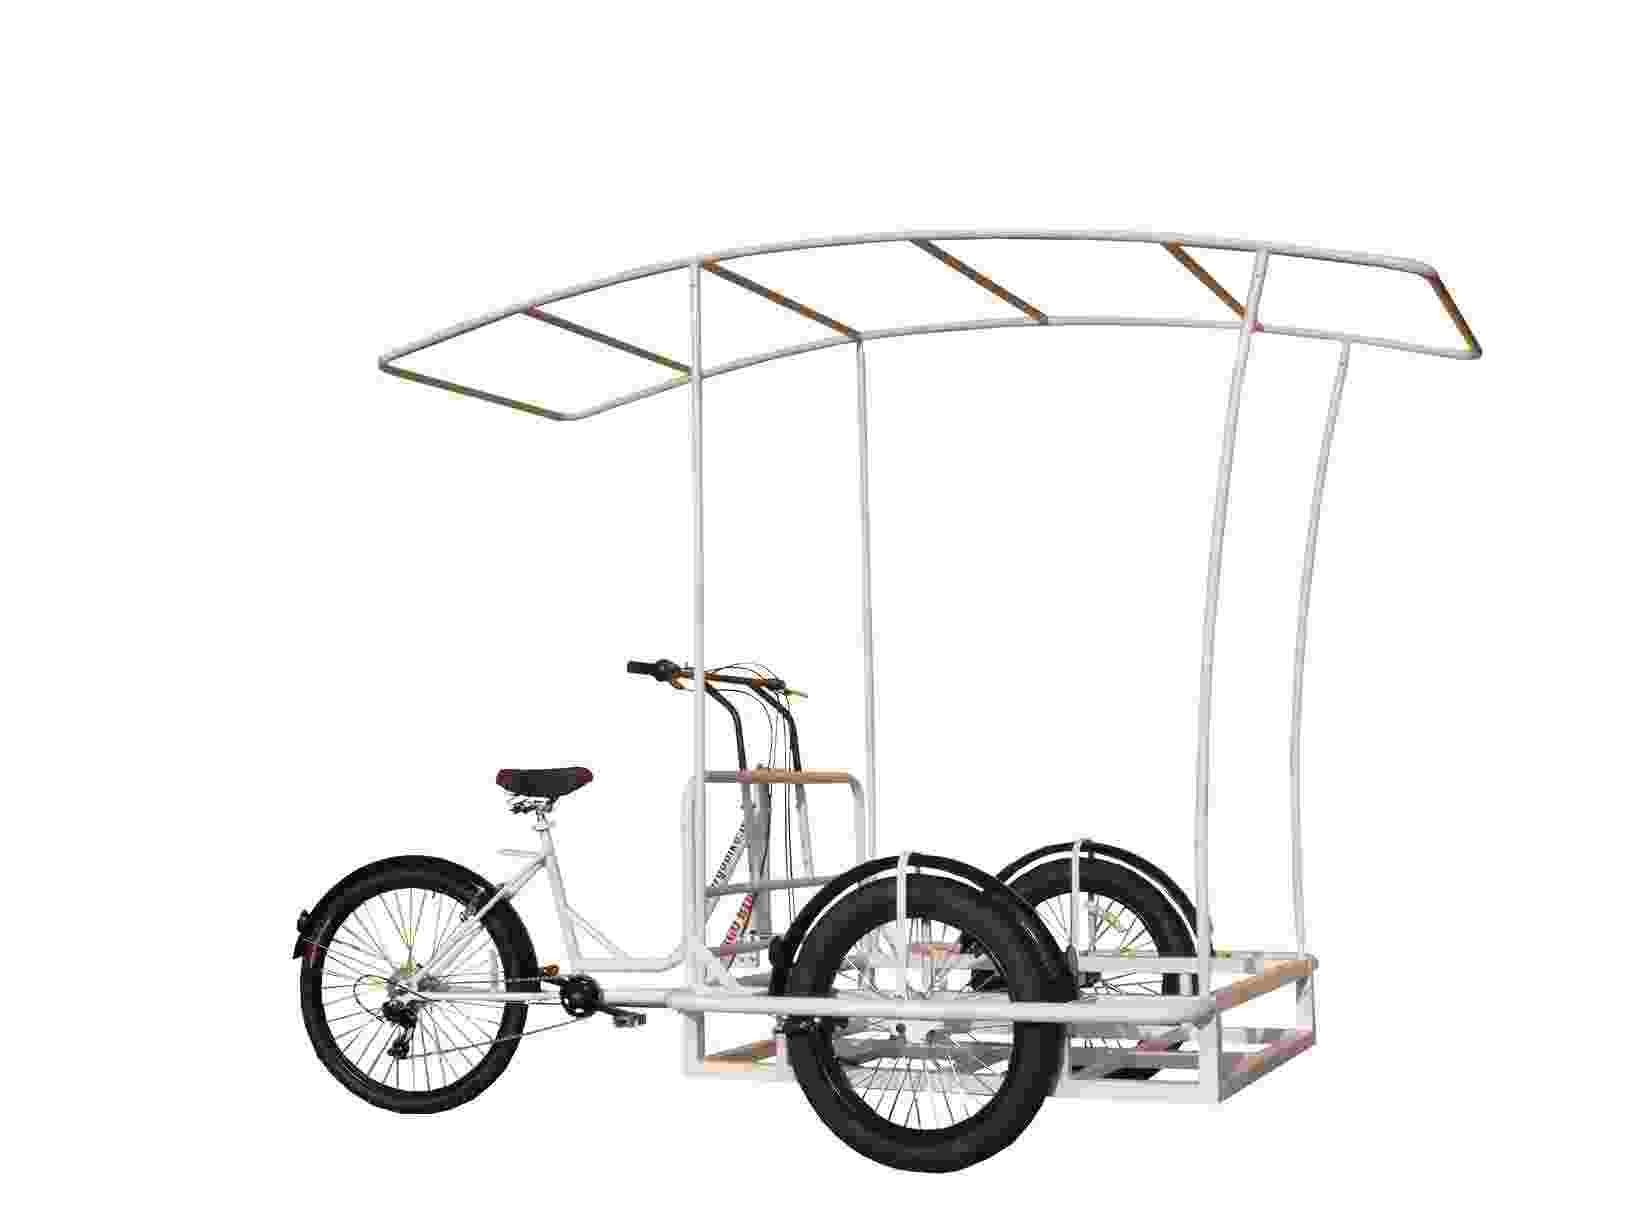 Catalog And Price List Of Cargo Bikes Cargo Tricycles Trailers